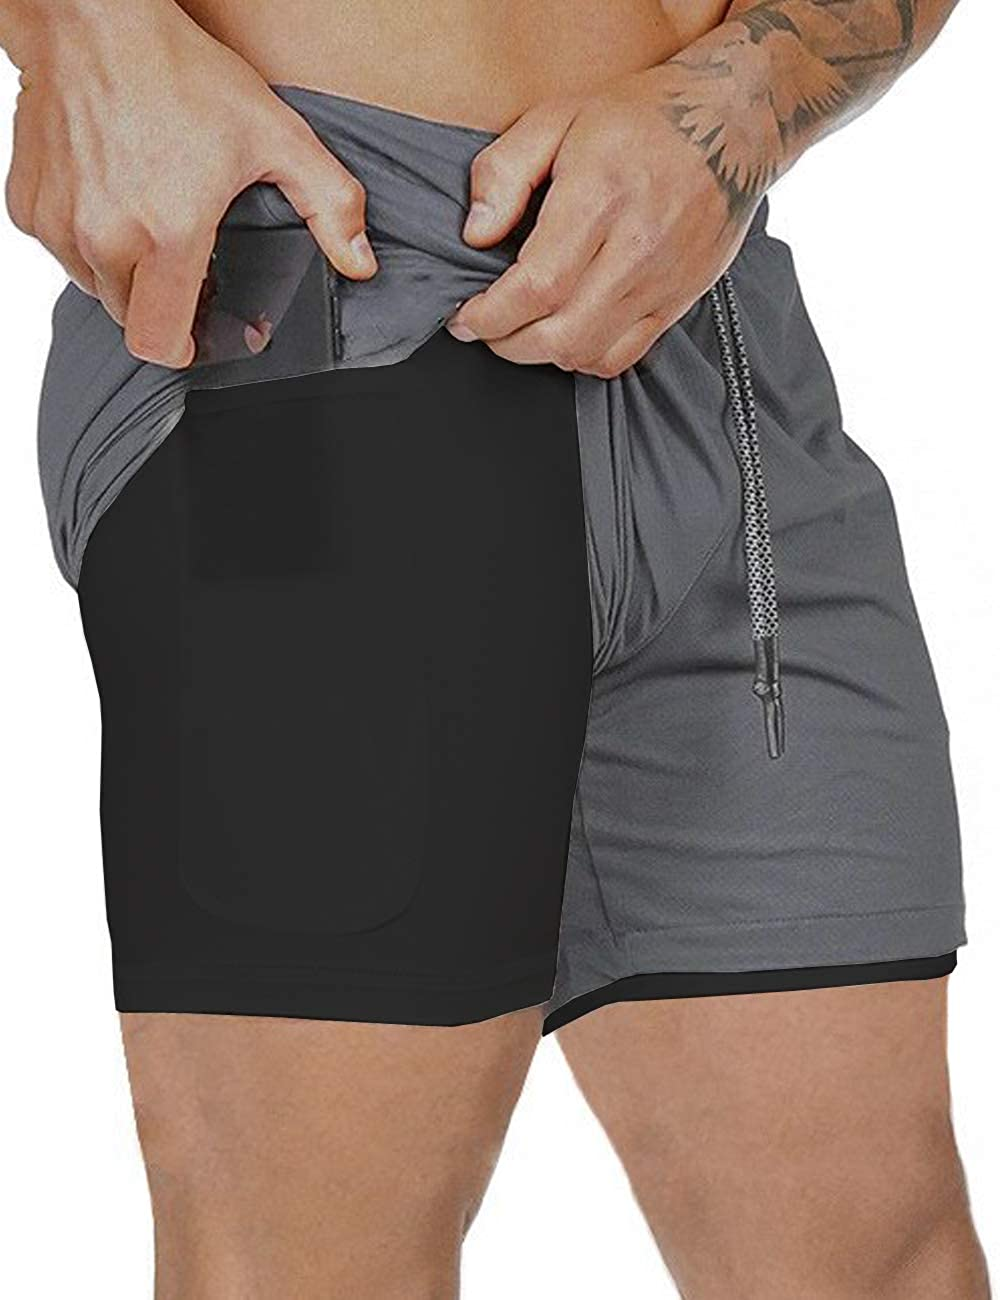 Gafeng Mens 2 in 1 Running Shorts Workout 5 Inch Mesh Gym Training Sport Light Quick Dry Pants with Phone Pocket